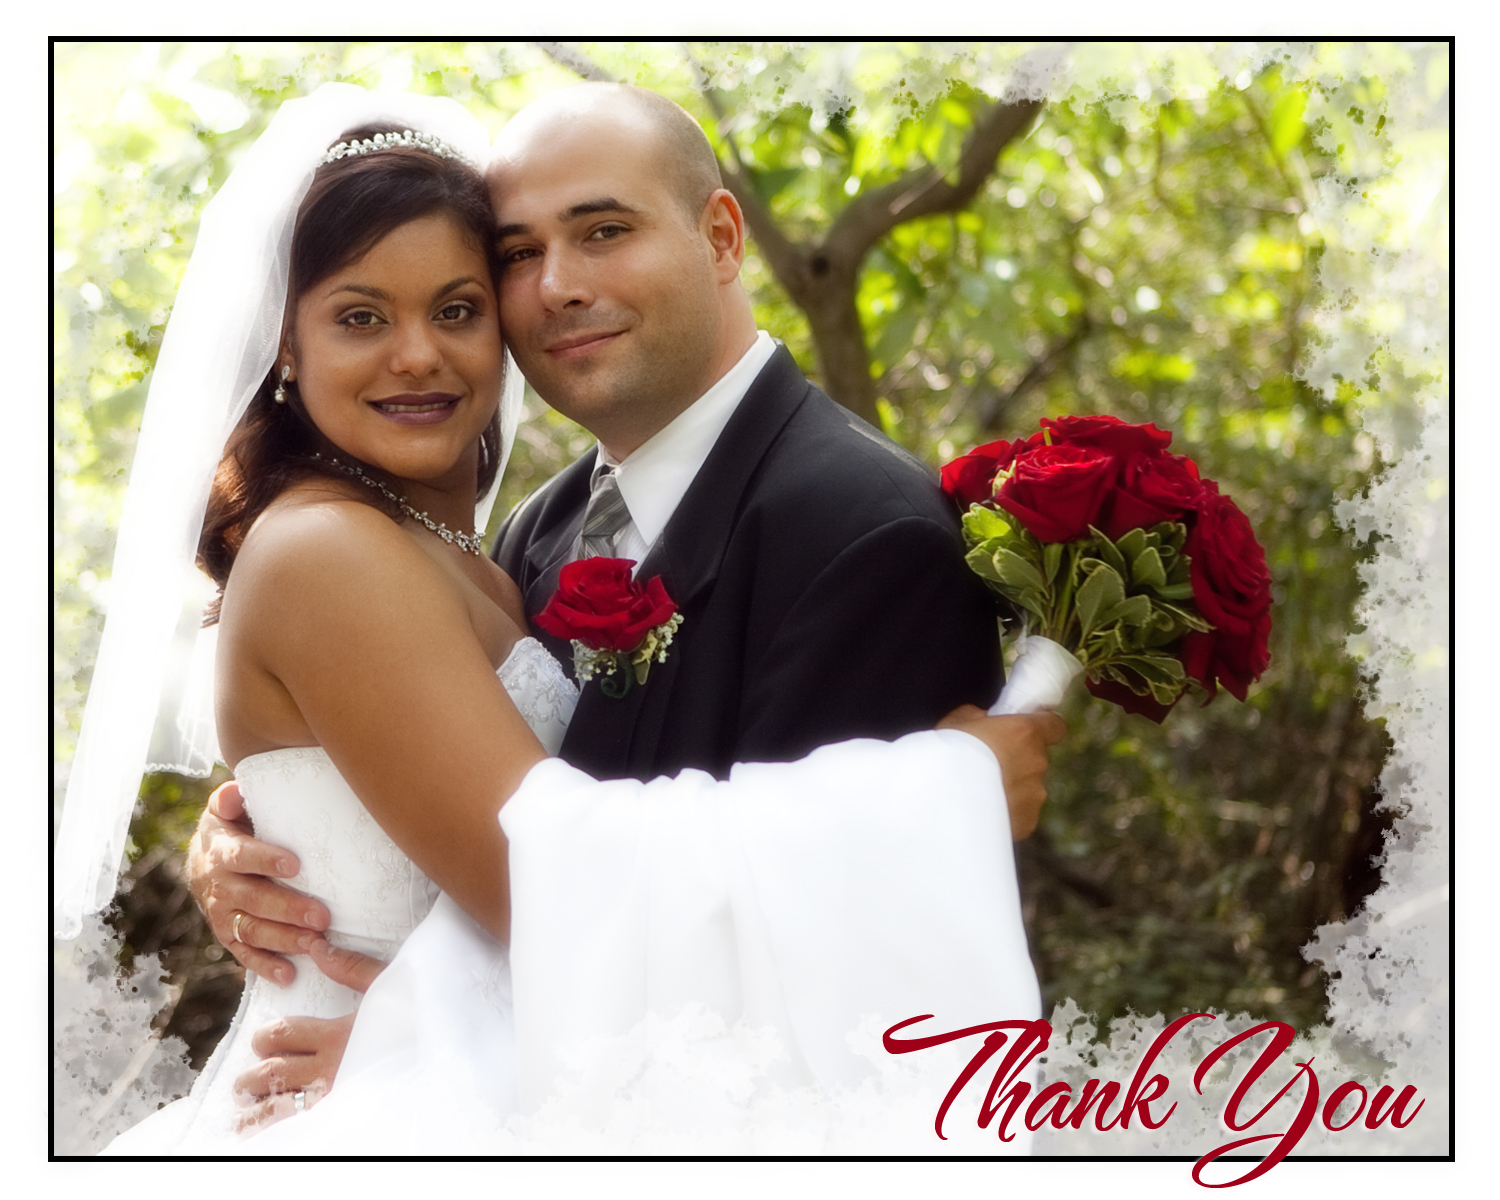 Wedding photo taken at the Skyland Manor in Ringwood NJ